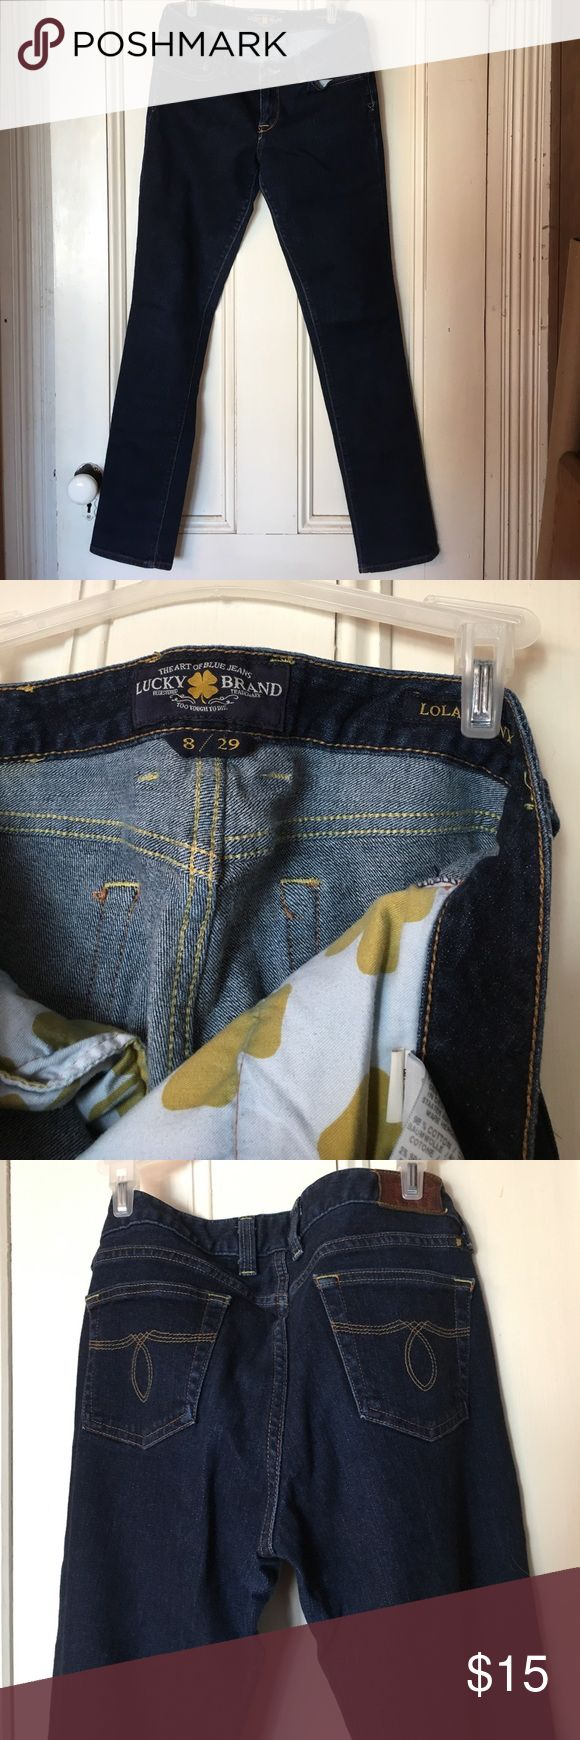 """Lucky Brand Jeans Lucky Brand Jeans, size 8/29, Lola Skinny.  These are a very snug fit and definitely  """"skinny"""" Jeans. Lucky Brand Pants Skinny"""